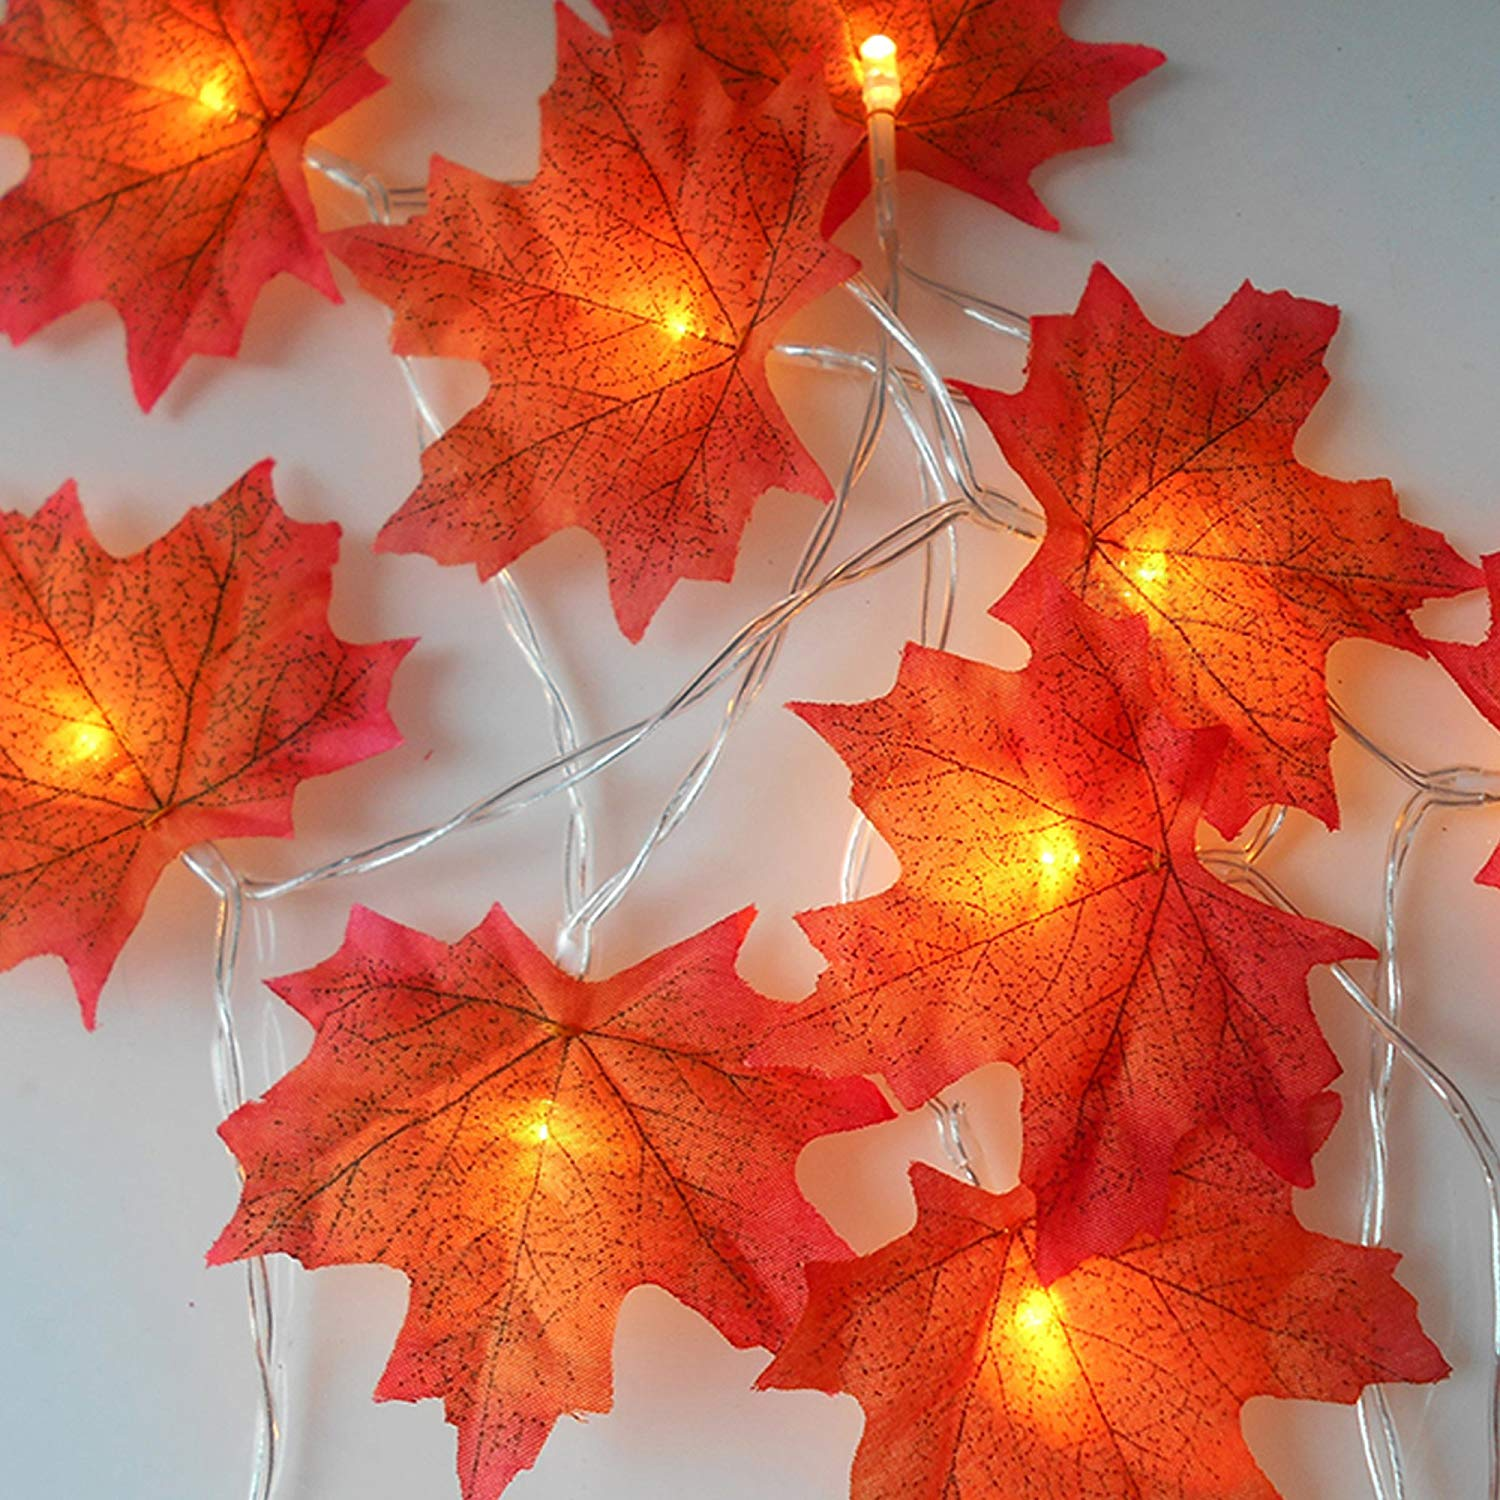 Buy 10ft 30 Led Lighted Fall Leaves Garland Fall Maple Leaves Garland Decor Autumn Fairy String Lights Battery Operated For Thanksgiving Christmas Birthday Parties Home Decor In Cheap Price On Alibaba Com